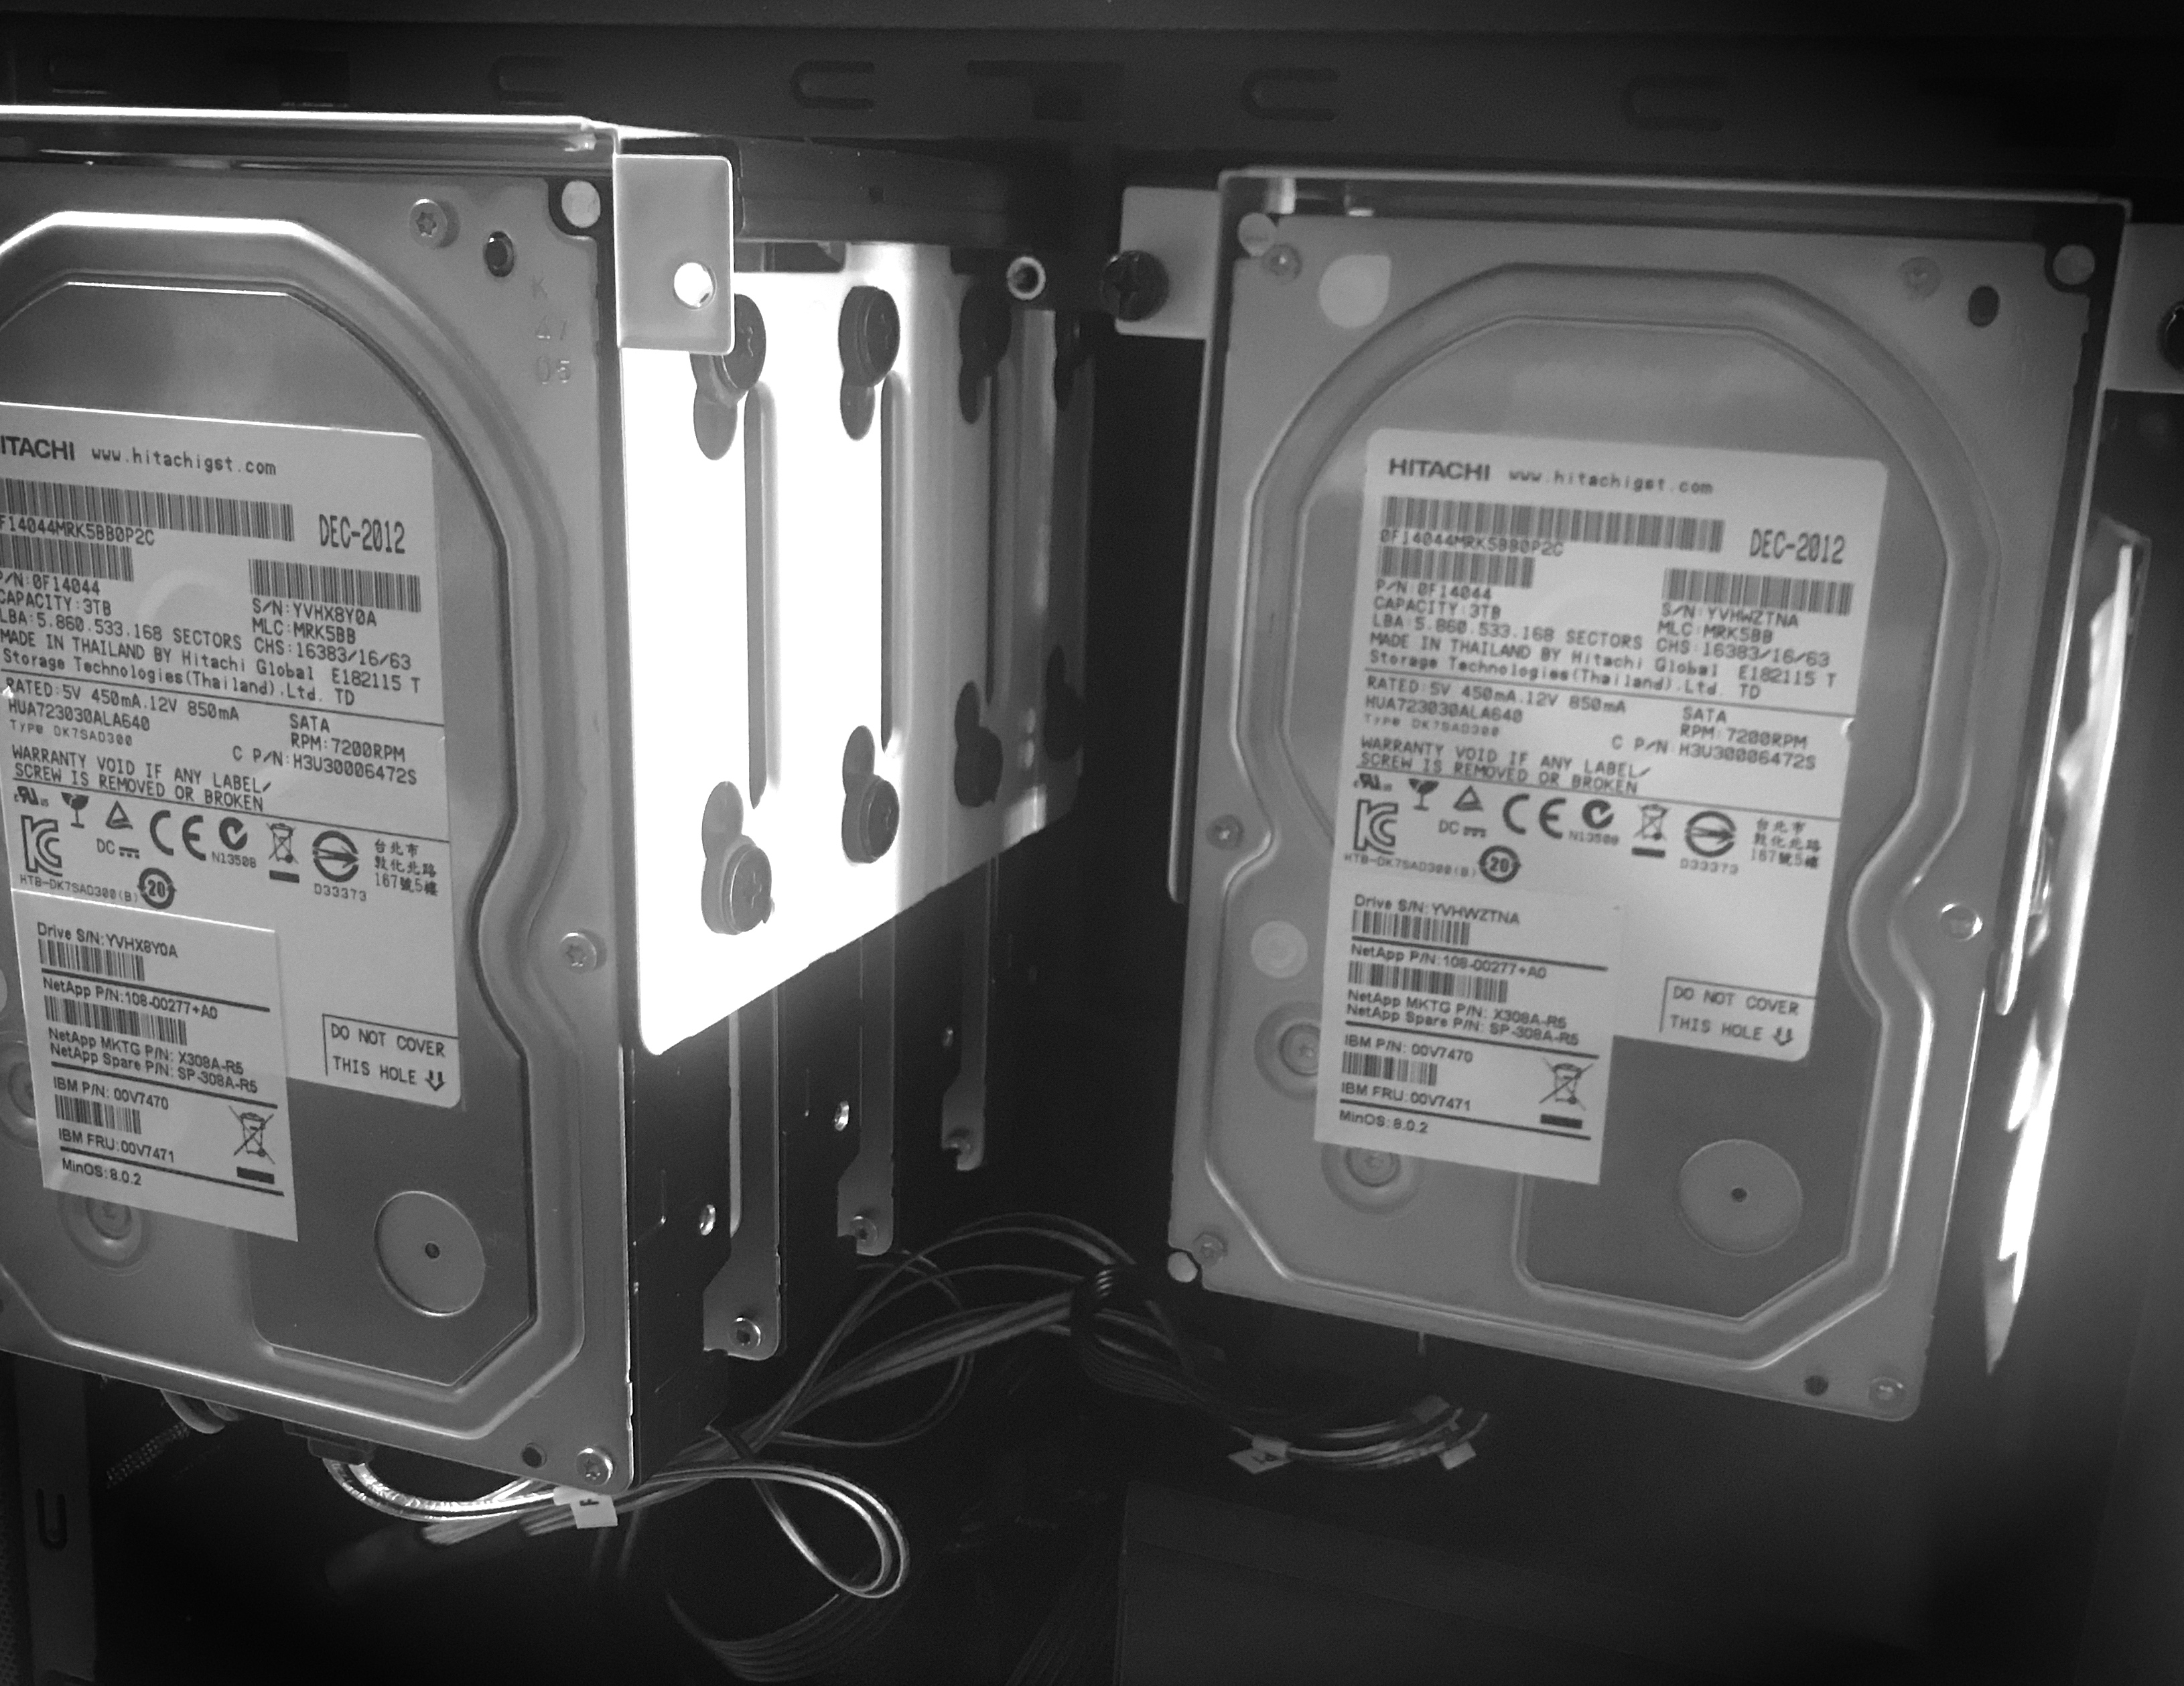 HDDs installed